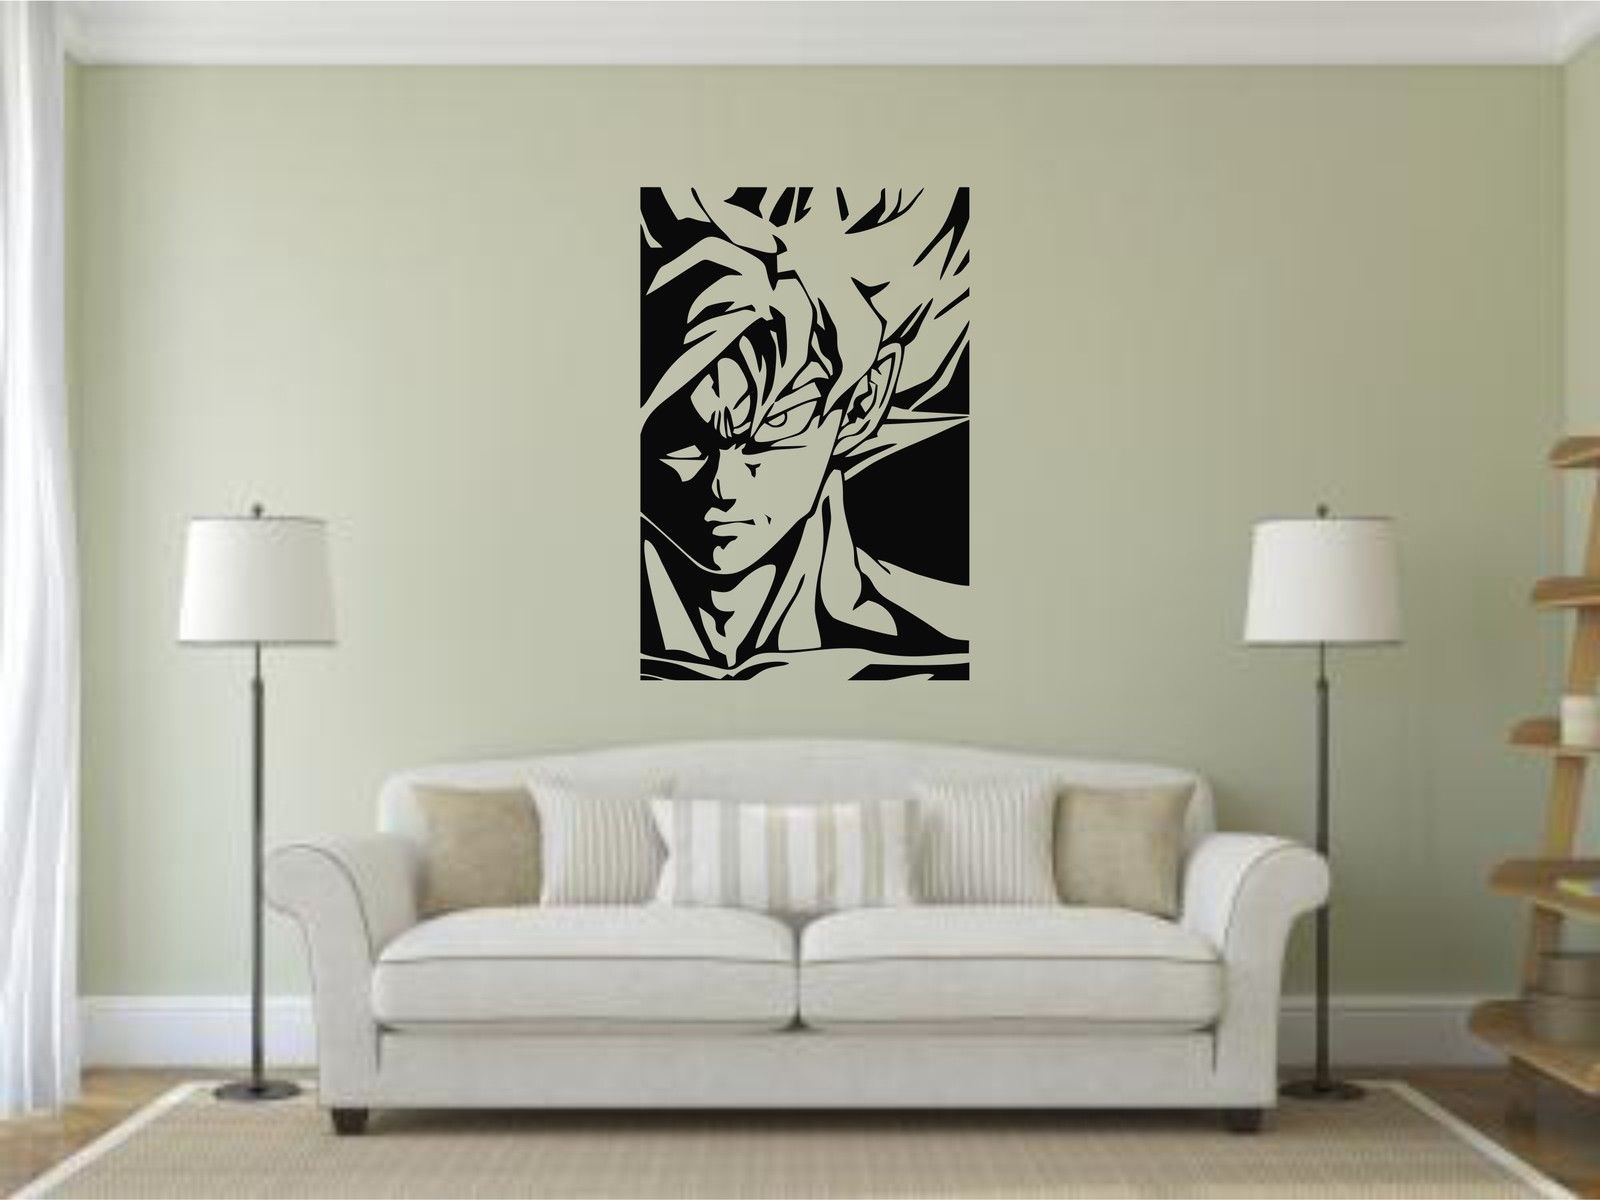 Dragon ball z wall decals image collections home wall decoration compare prices on goku wall decal online shoppingbuy low price goku dragon ball z inspired wall amipublicfo Images